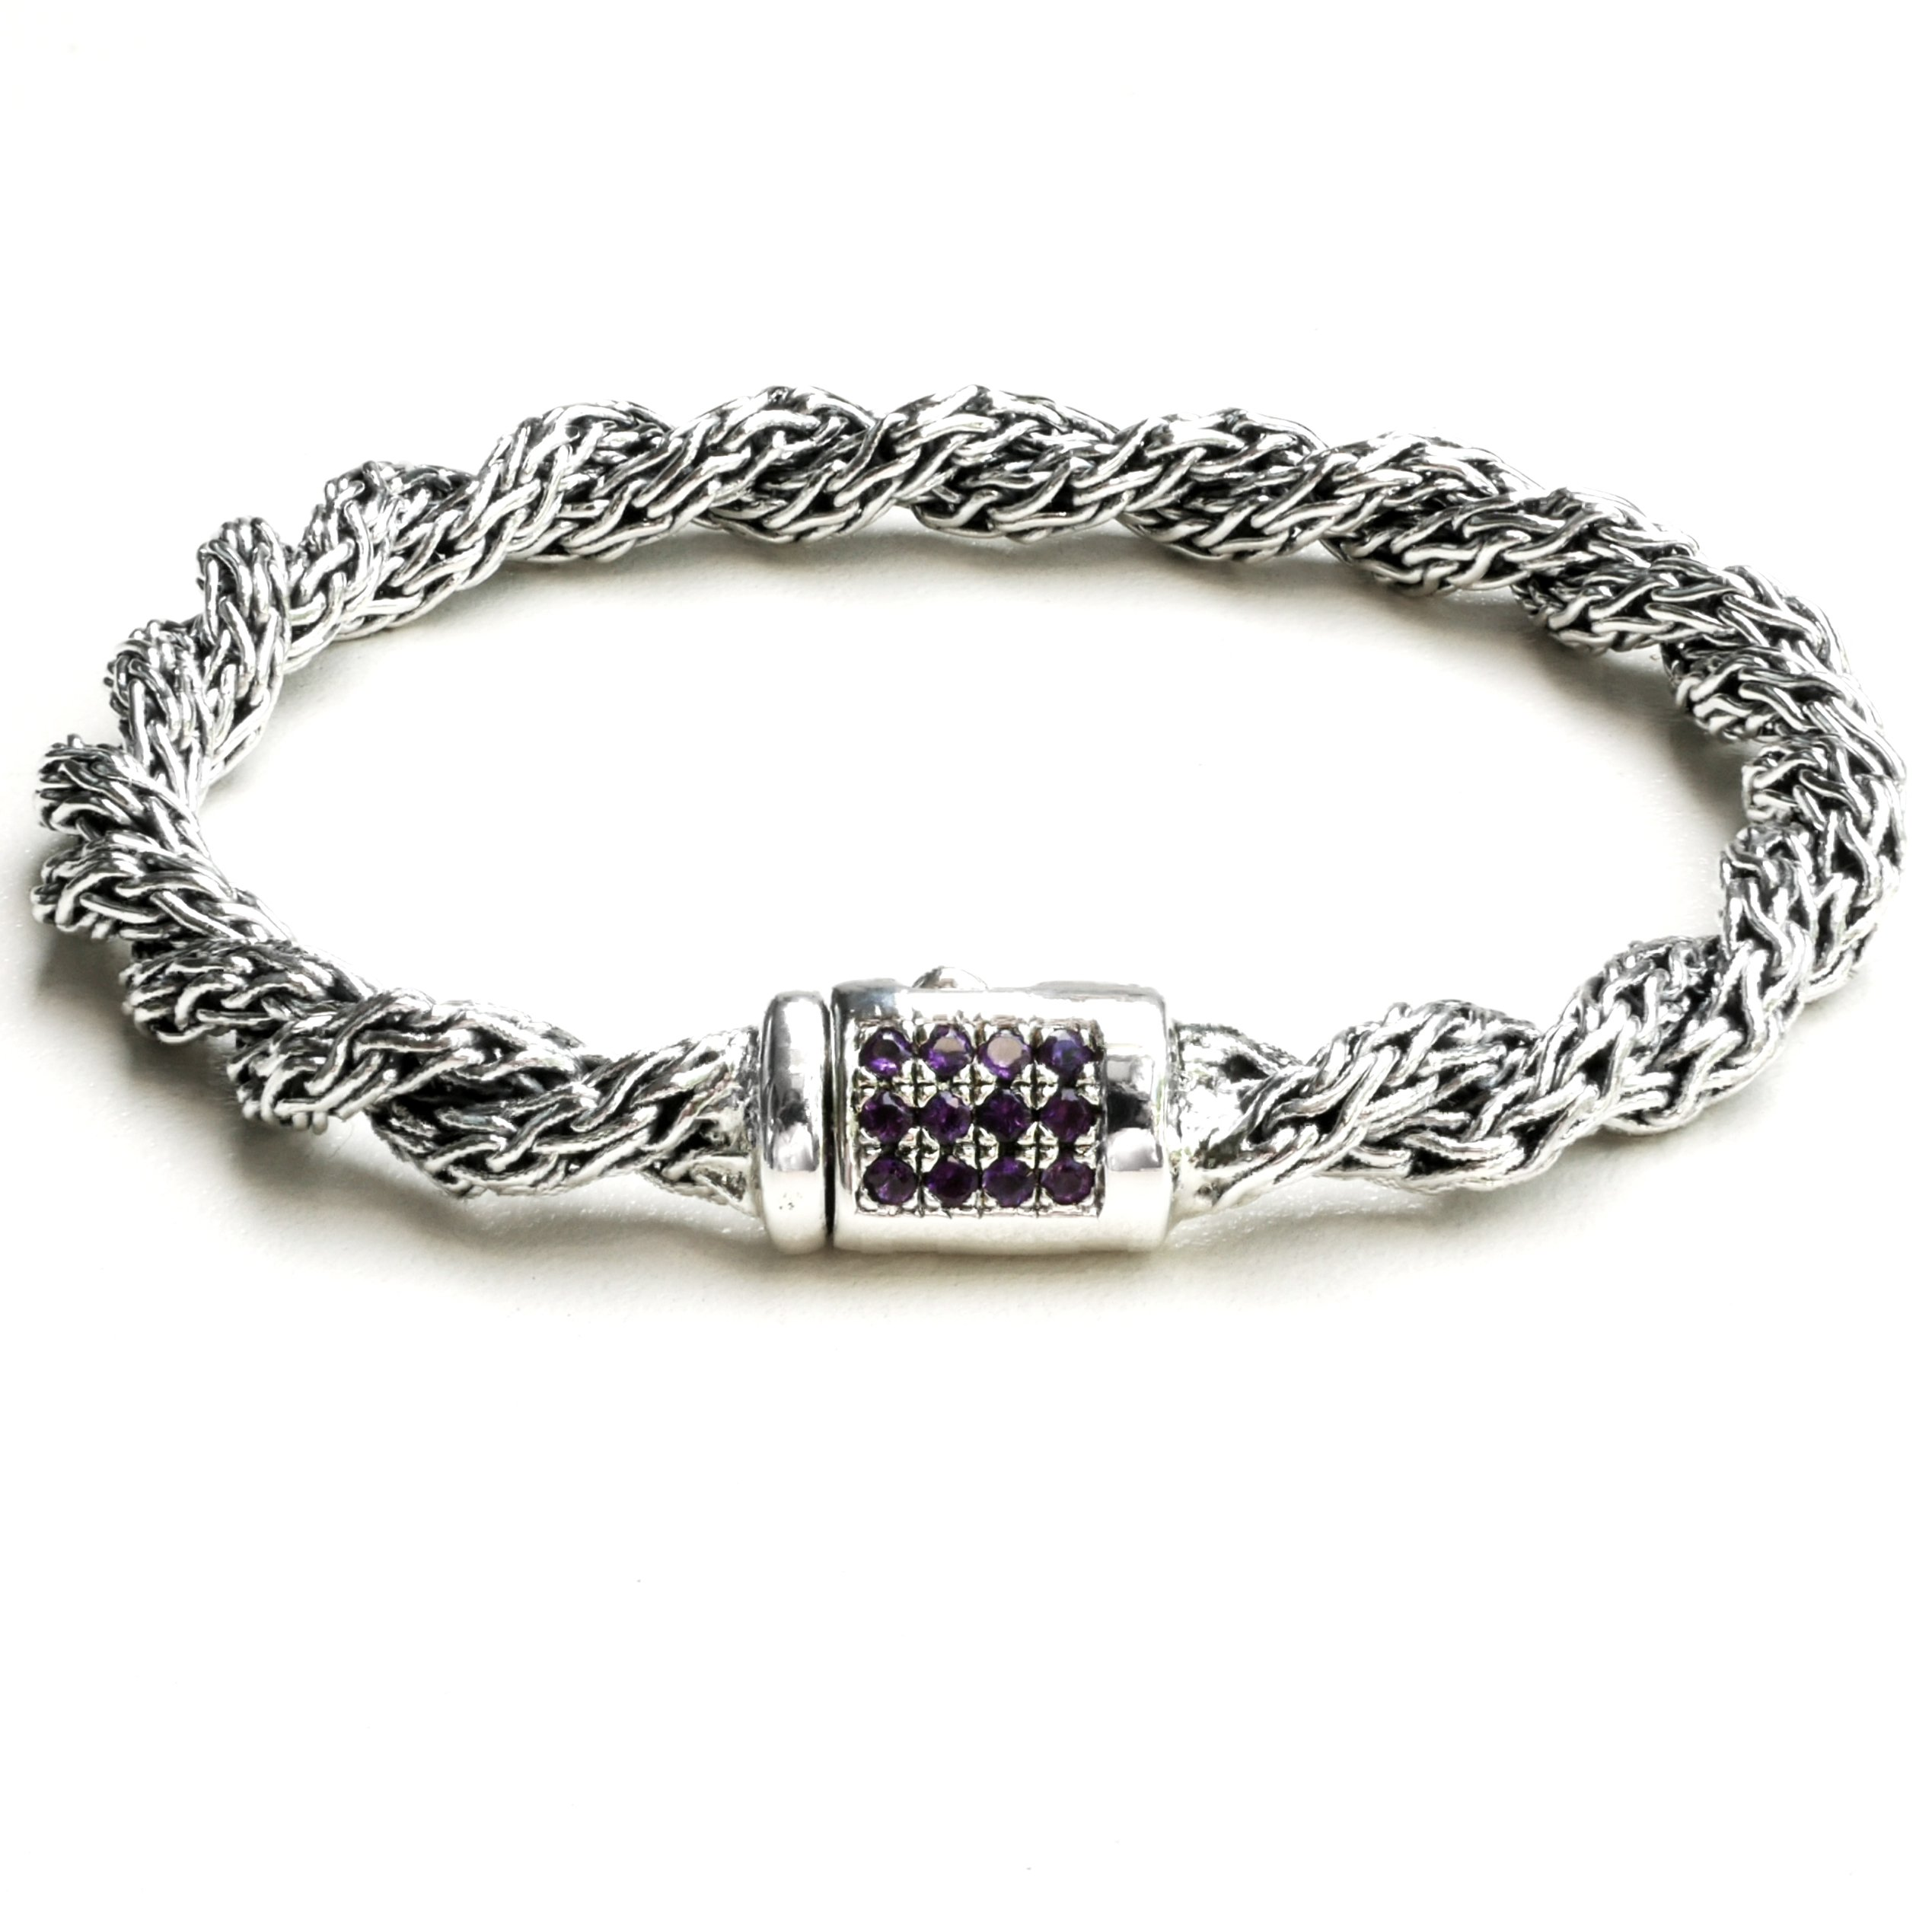 Handwoven 925 Sterling Silver Twisted Link Bali Style Bracelet with Amethyst for Women (7.5) by Kham